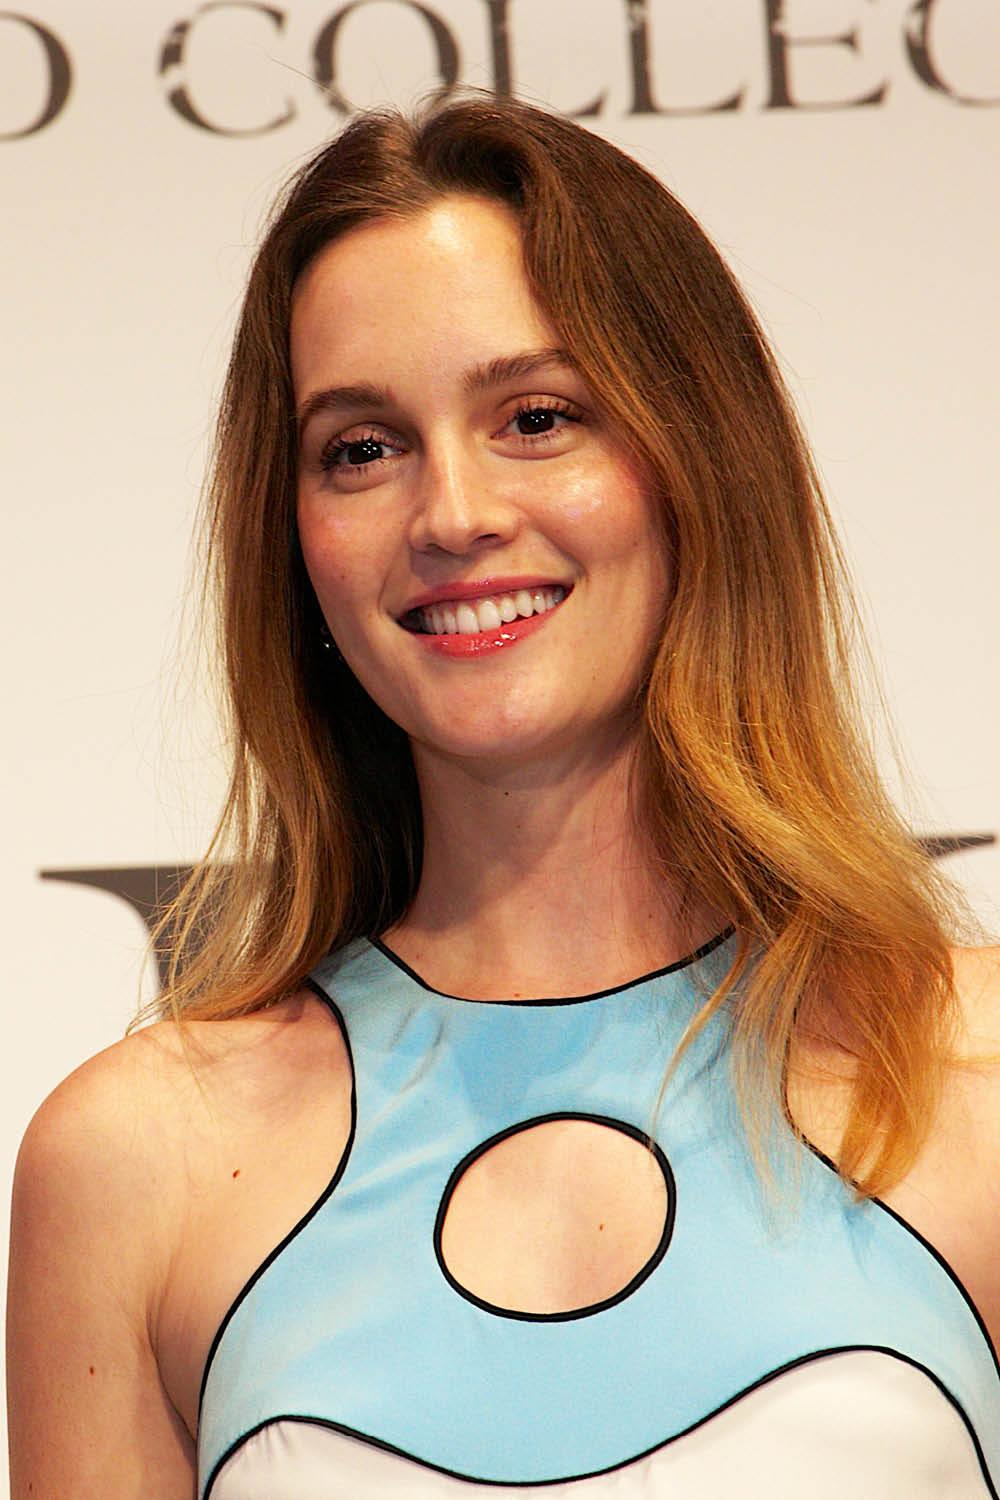 mechas californianas leighton meester. Mechas californianas para pelirrojas